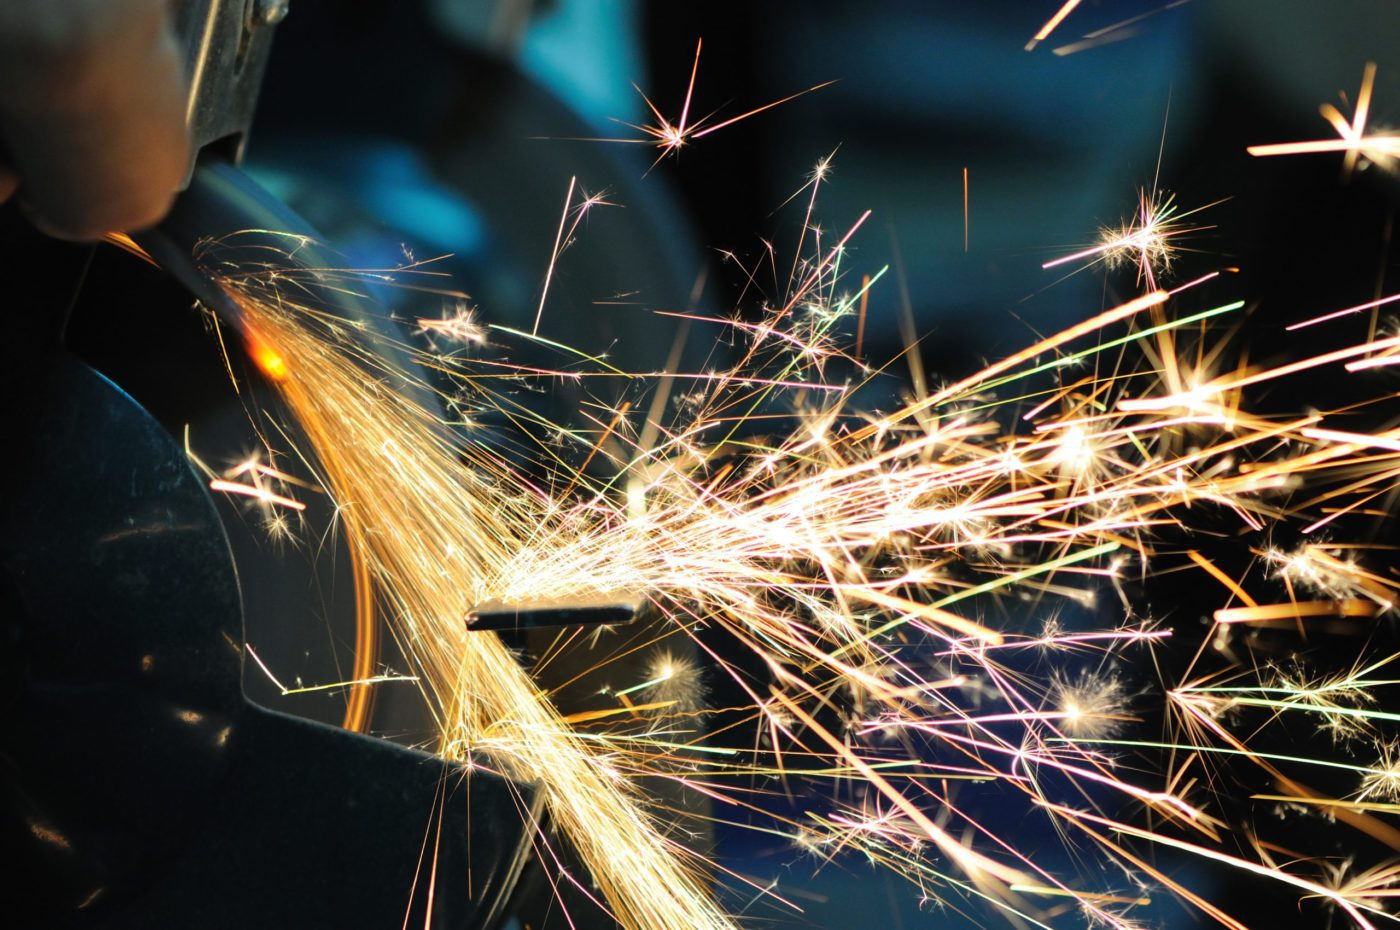 Man holds detail in hand and works with equipment for cutting metal, bright fiery sparks fly apart, closeup photo